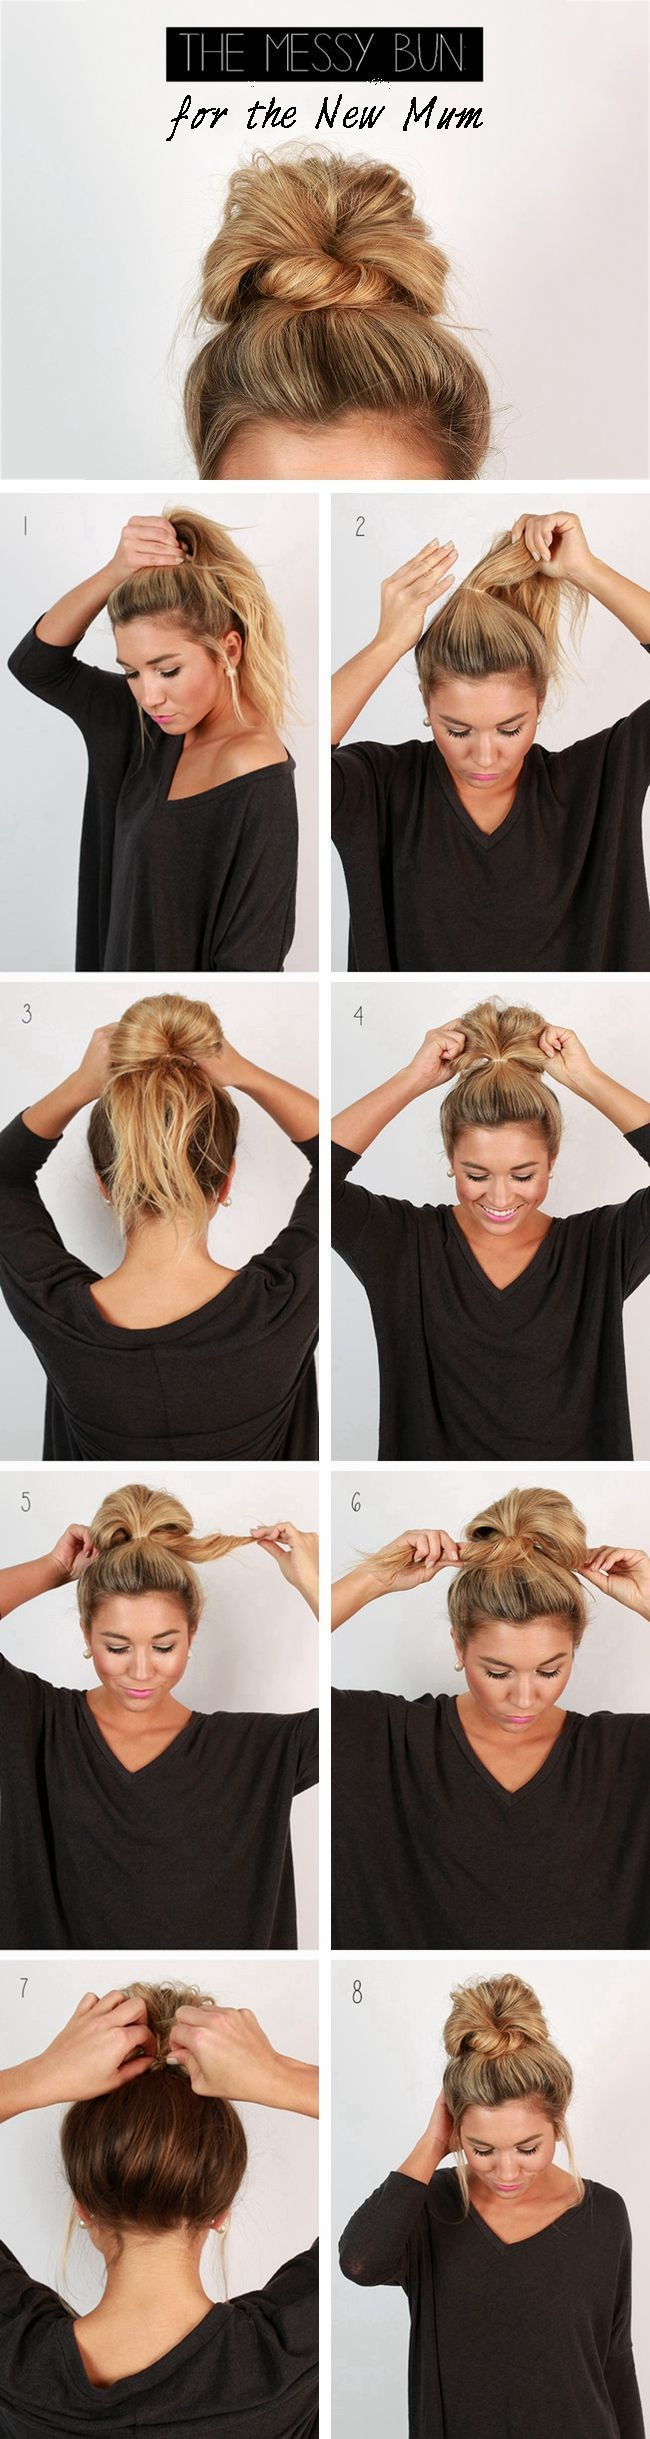 Updo ideas. Easy updo hairstyles with directions.